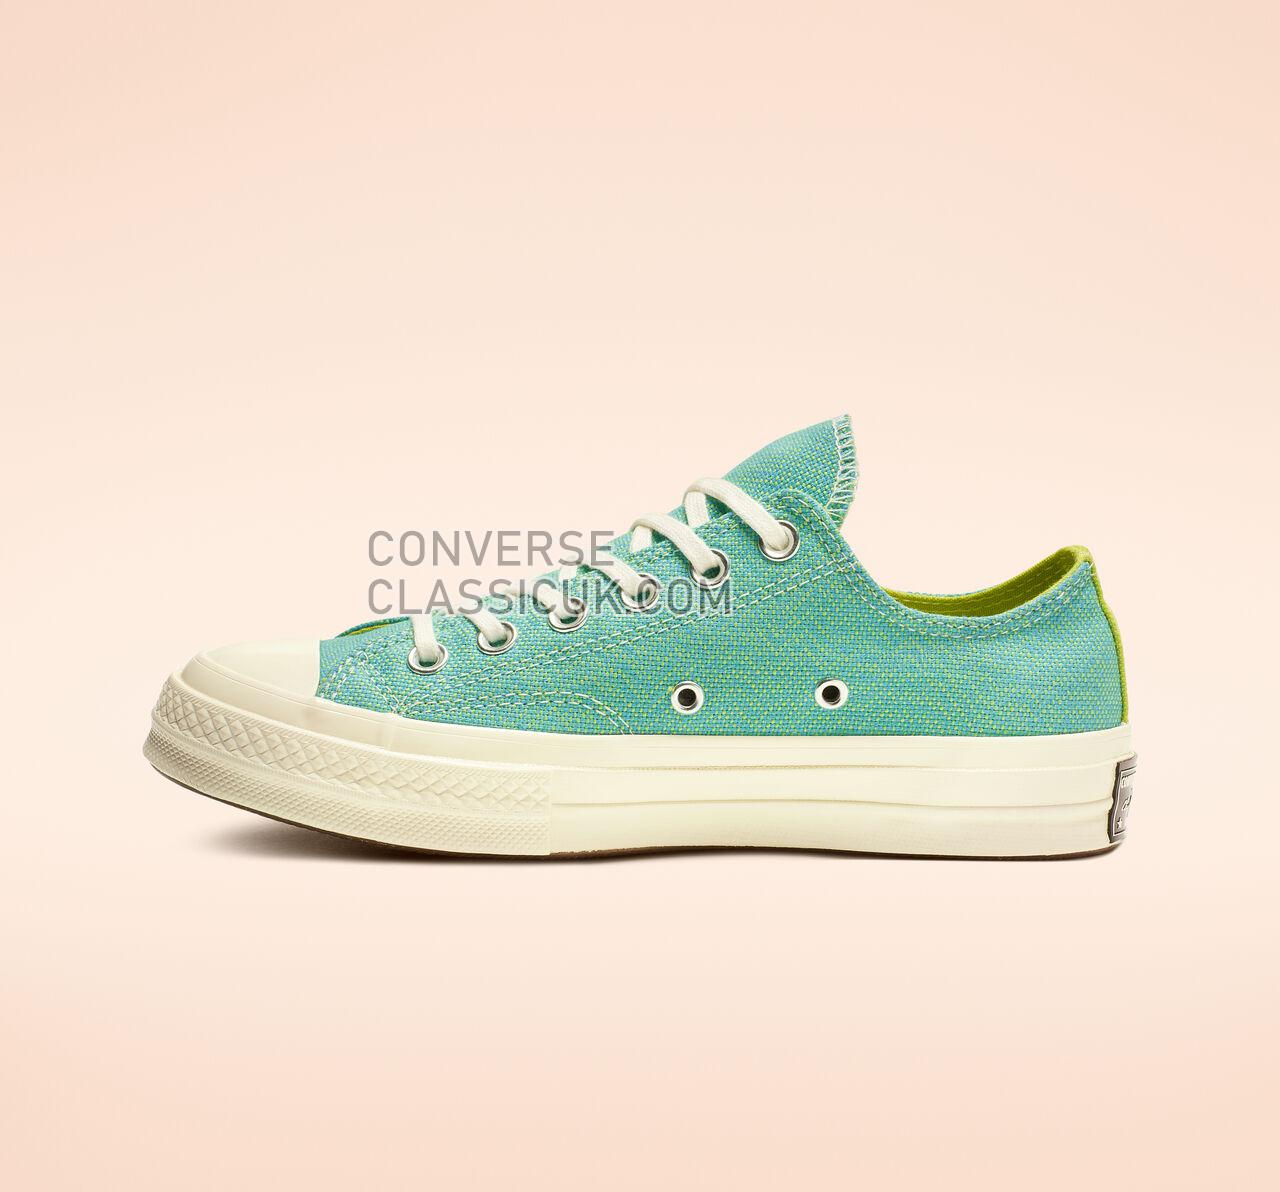 Converse Chuck 70 Carnival Lights Low Top Womens 564132C Gnarly Blue/Bold Lime/Egret Shoes